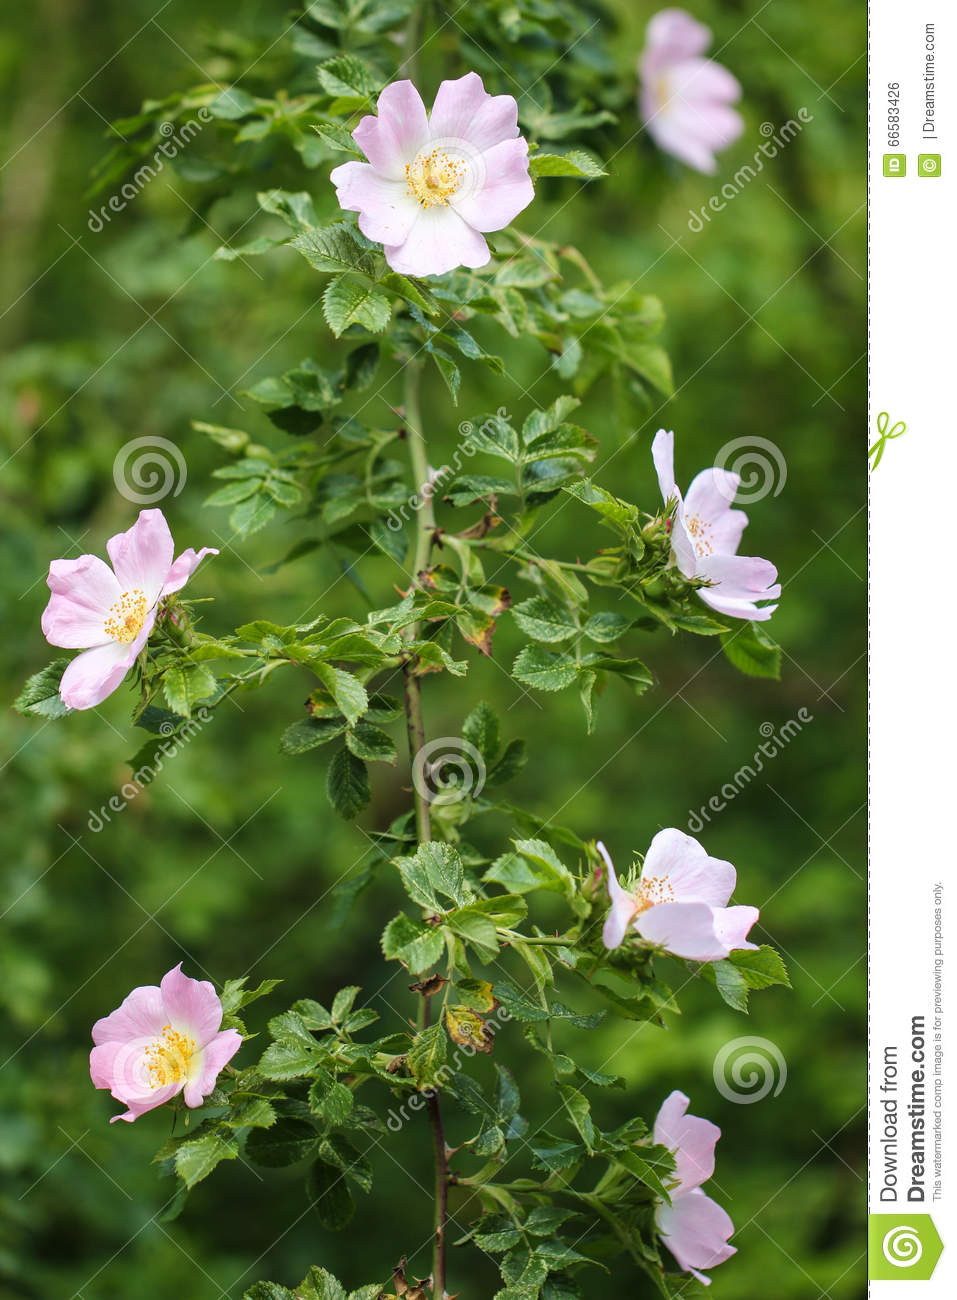 Pink Wild Rose In Full Bloom Dangling From The Bush In The Garden.